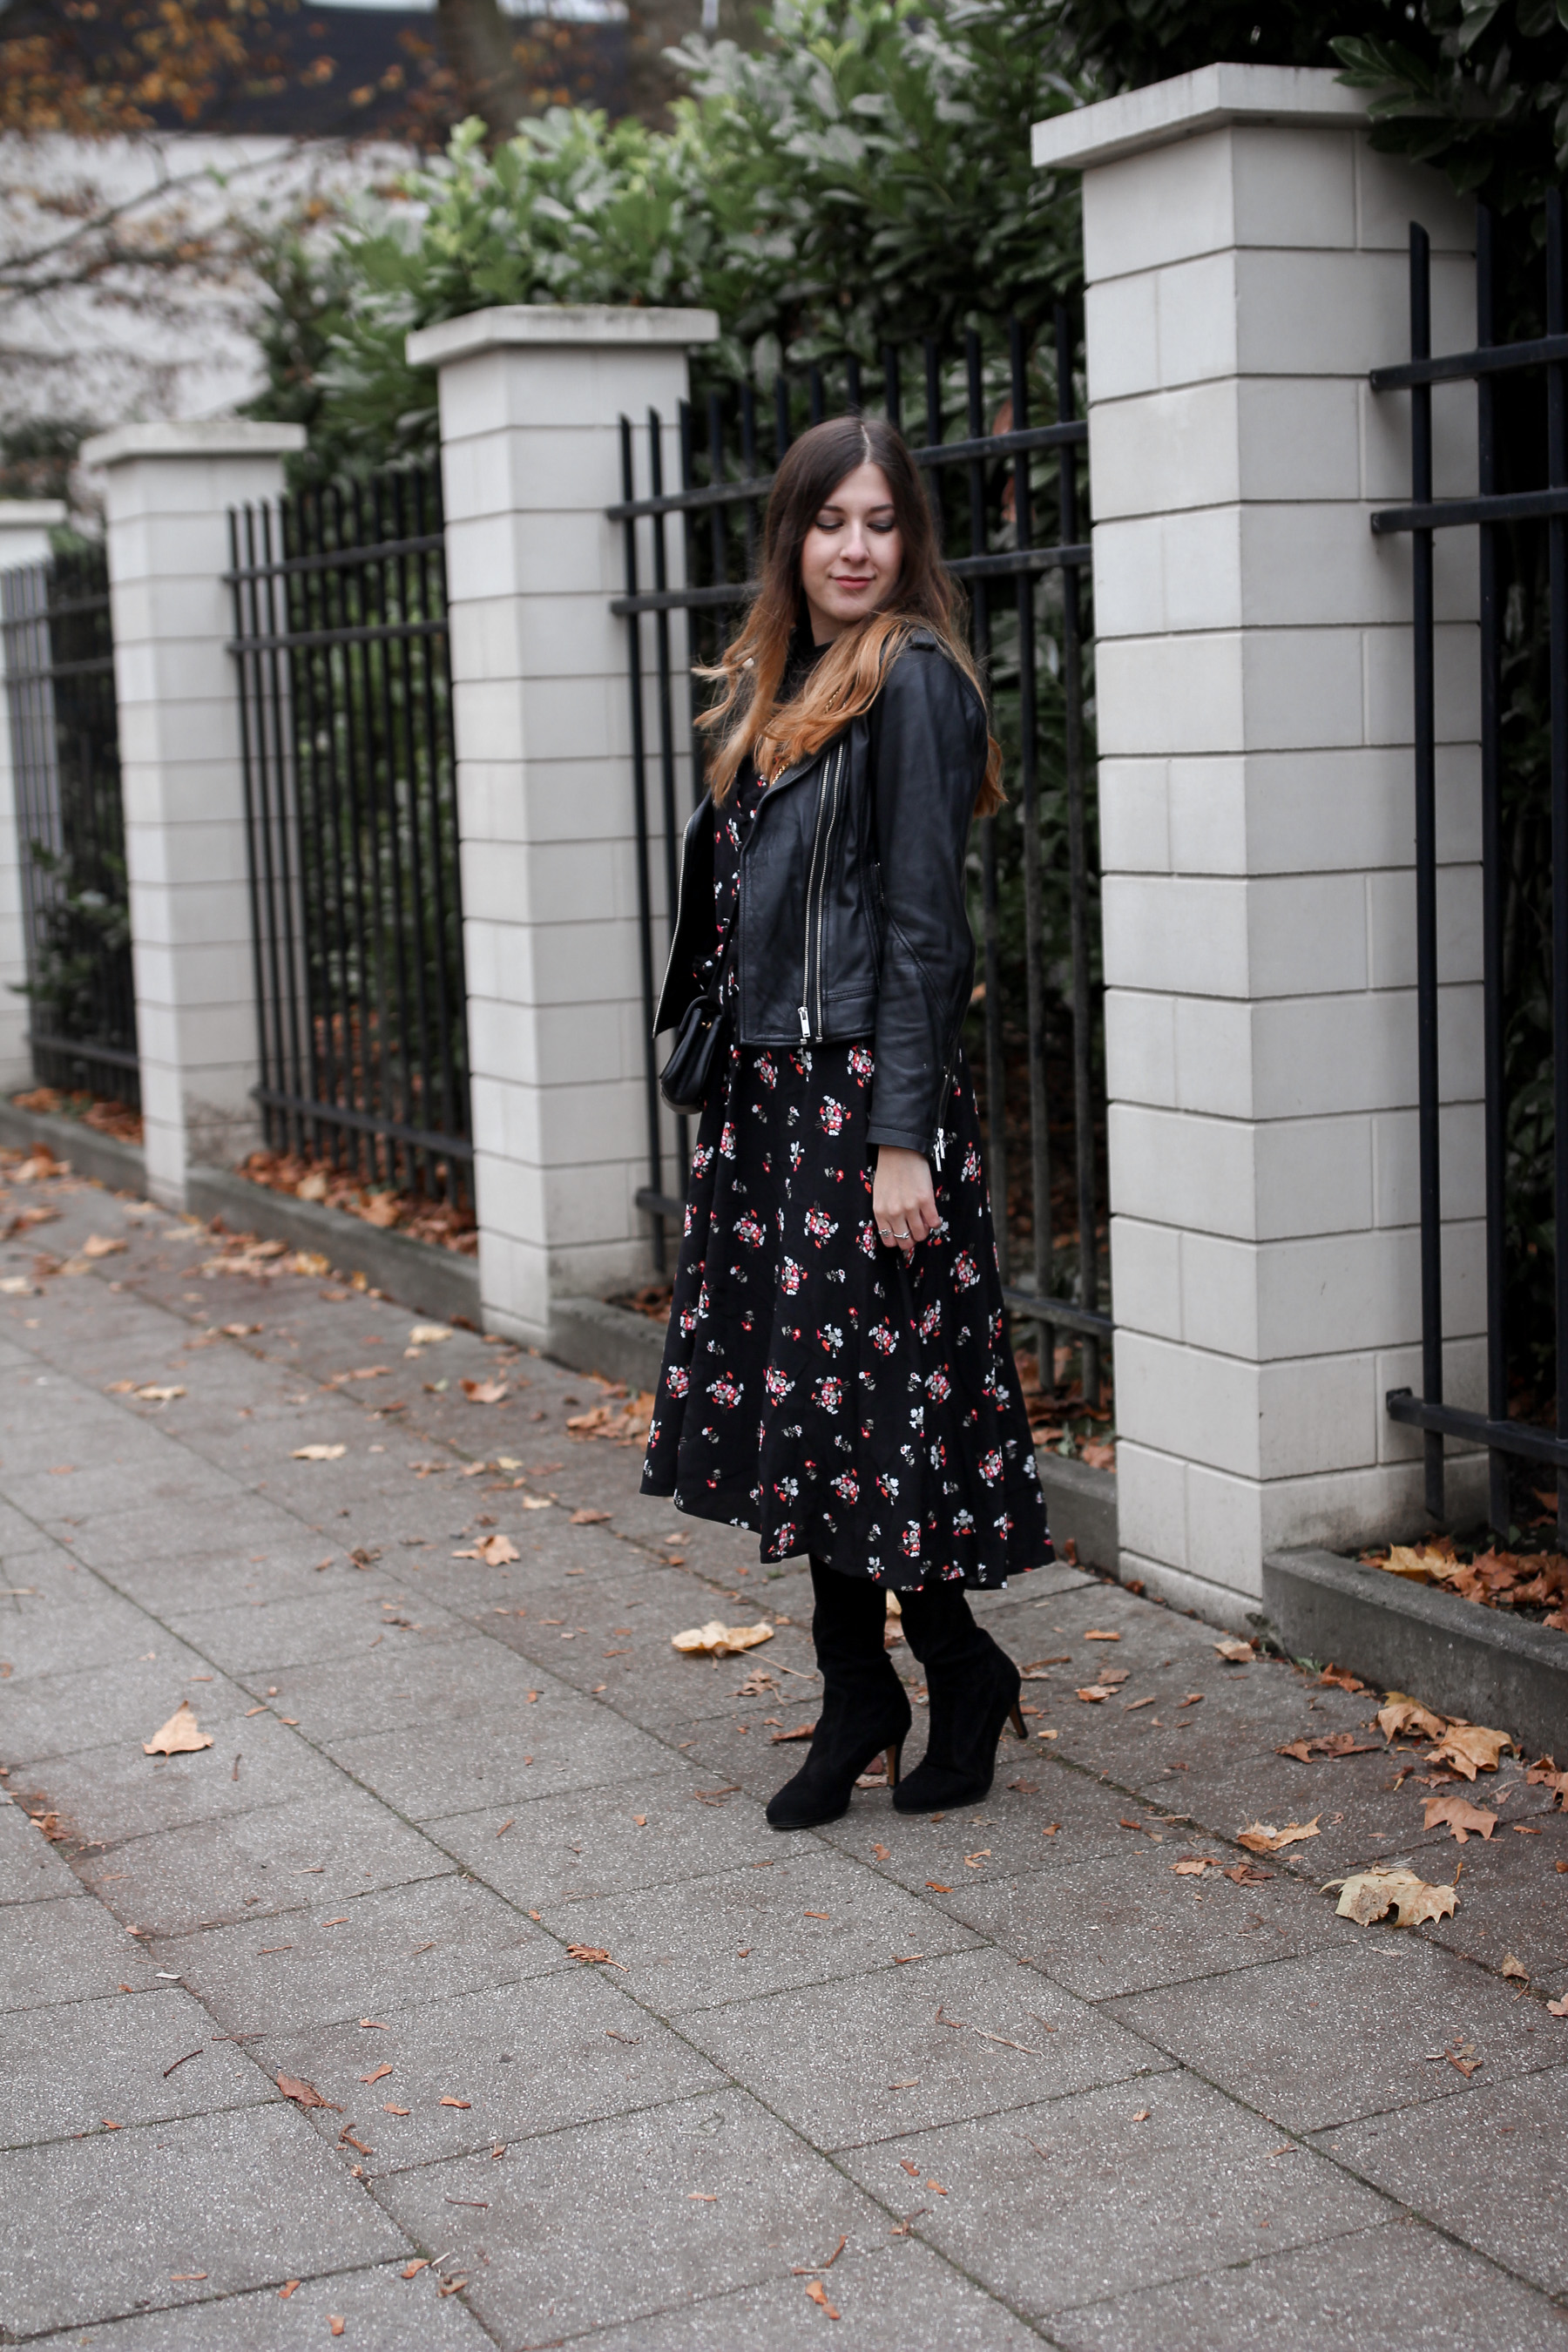 maxikleid asos, streetstyle, outfit, leather jacket, asseenonme, fall, winter, autumn, top fashion blog, comeascarrot